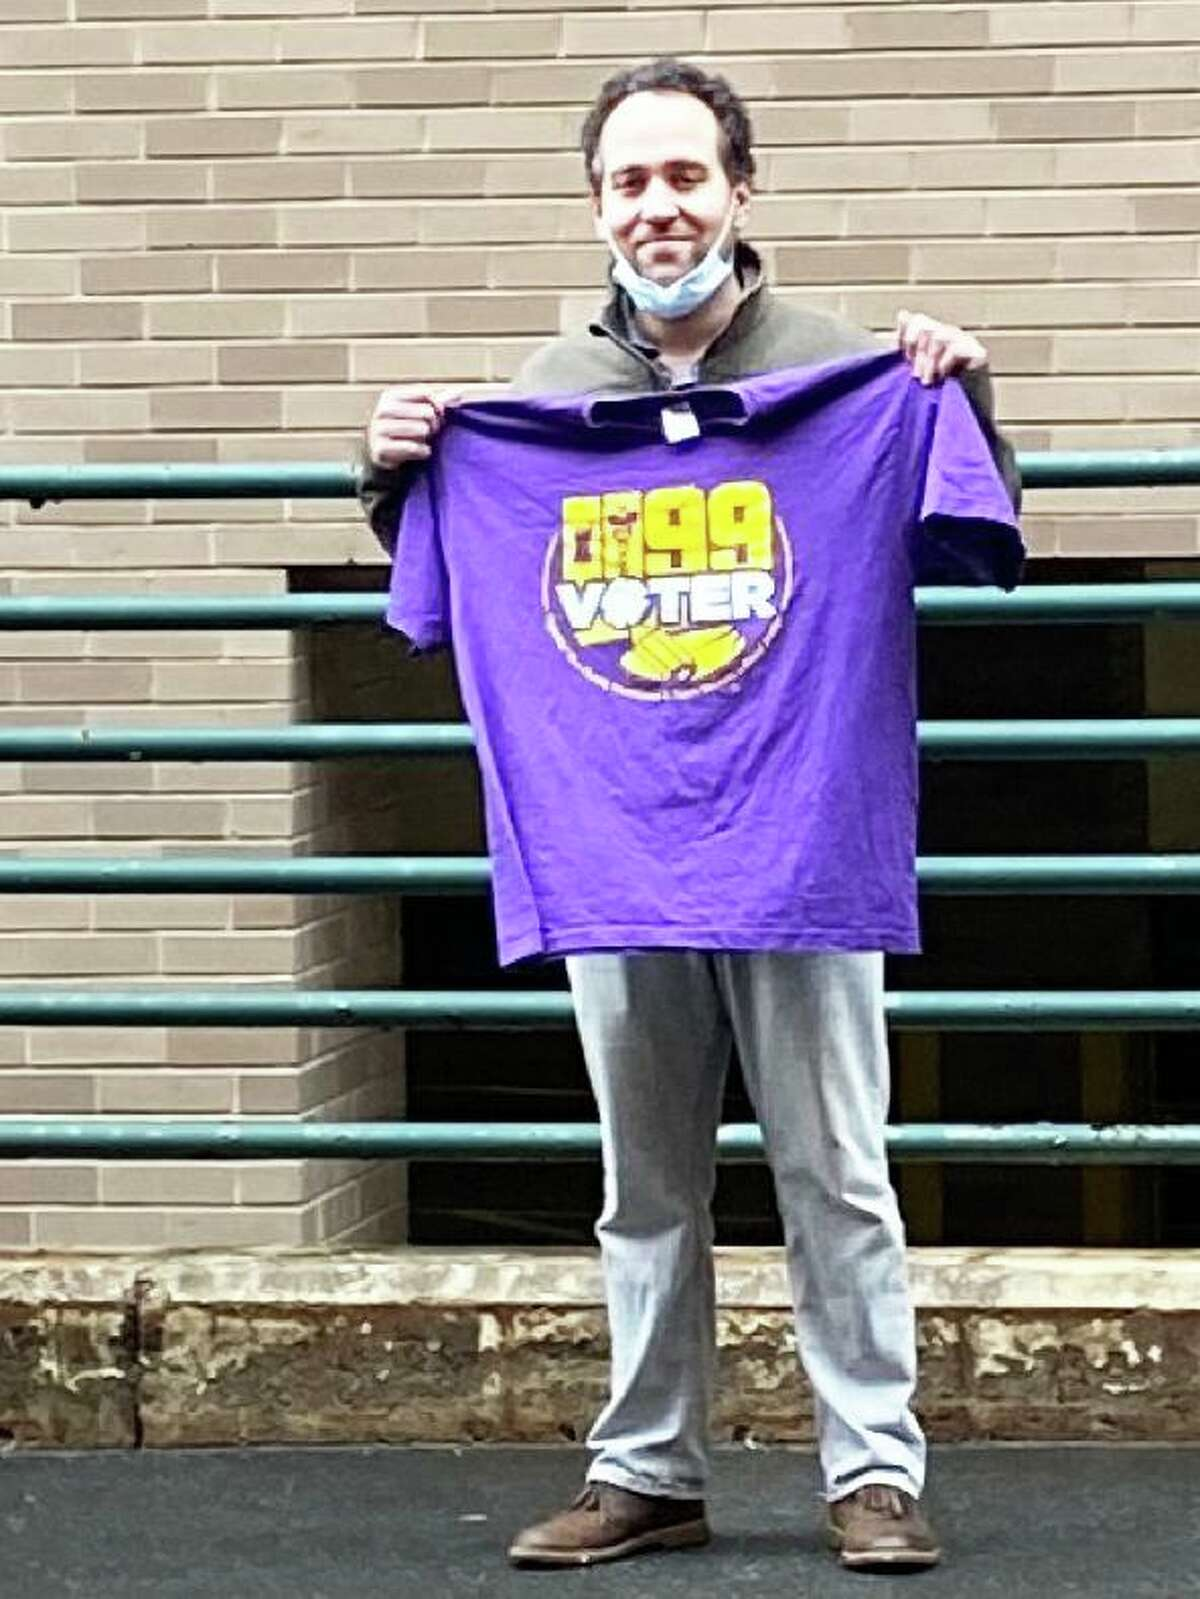 The SEIU Union, representing Department of Mental Health and Addiction Services employees, delivered a 1,100-signature petition to the agency Friday, requesting lifesaving PPEs, expanded safety protocols and essential pay. Here, Julio Reyes shows off his shirt.